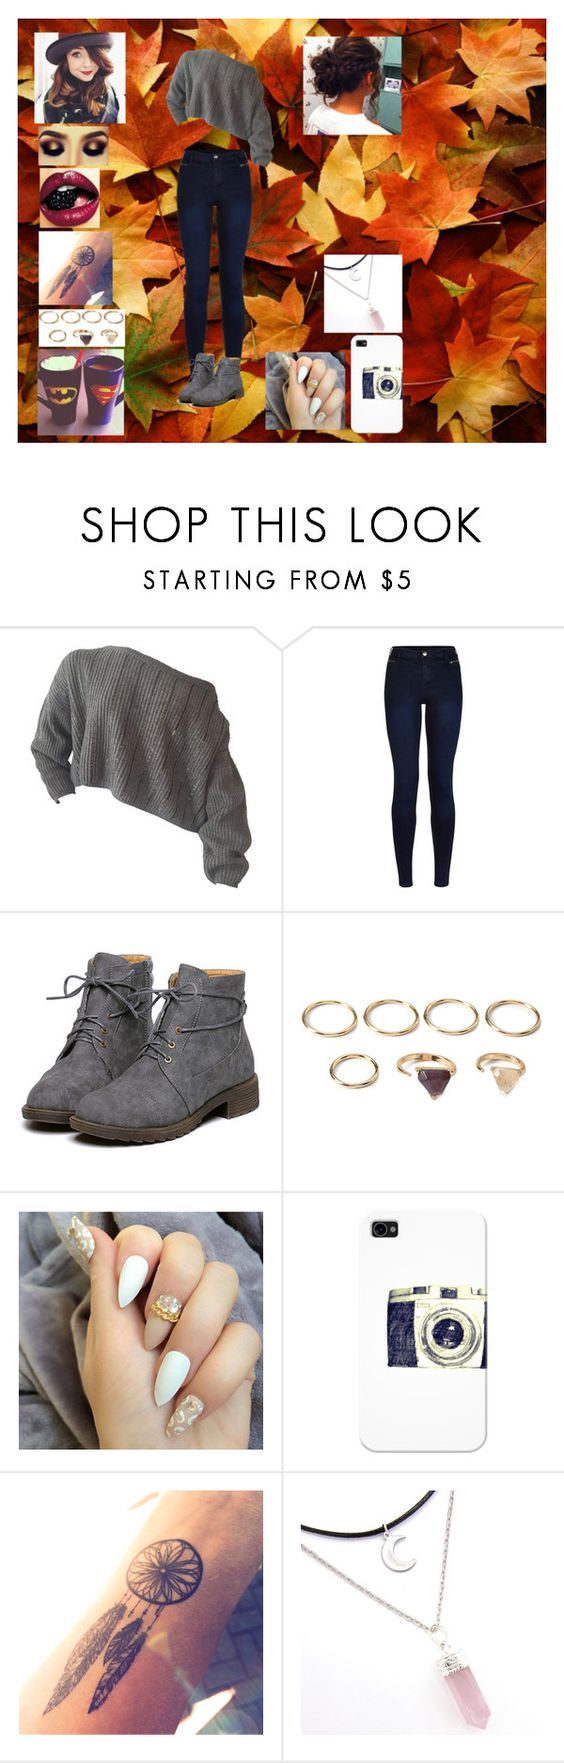 """Untitled #891"" by werewolflover90 ❤ liked on Polyvore featuring Urban Bliss, Forever 21 and Casetify"